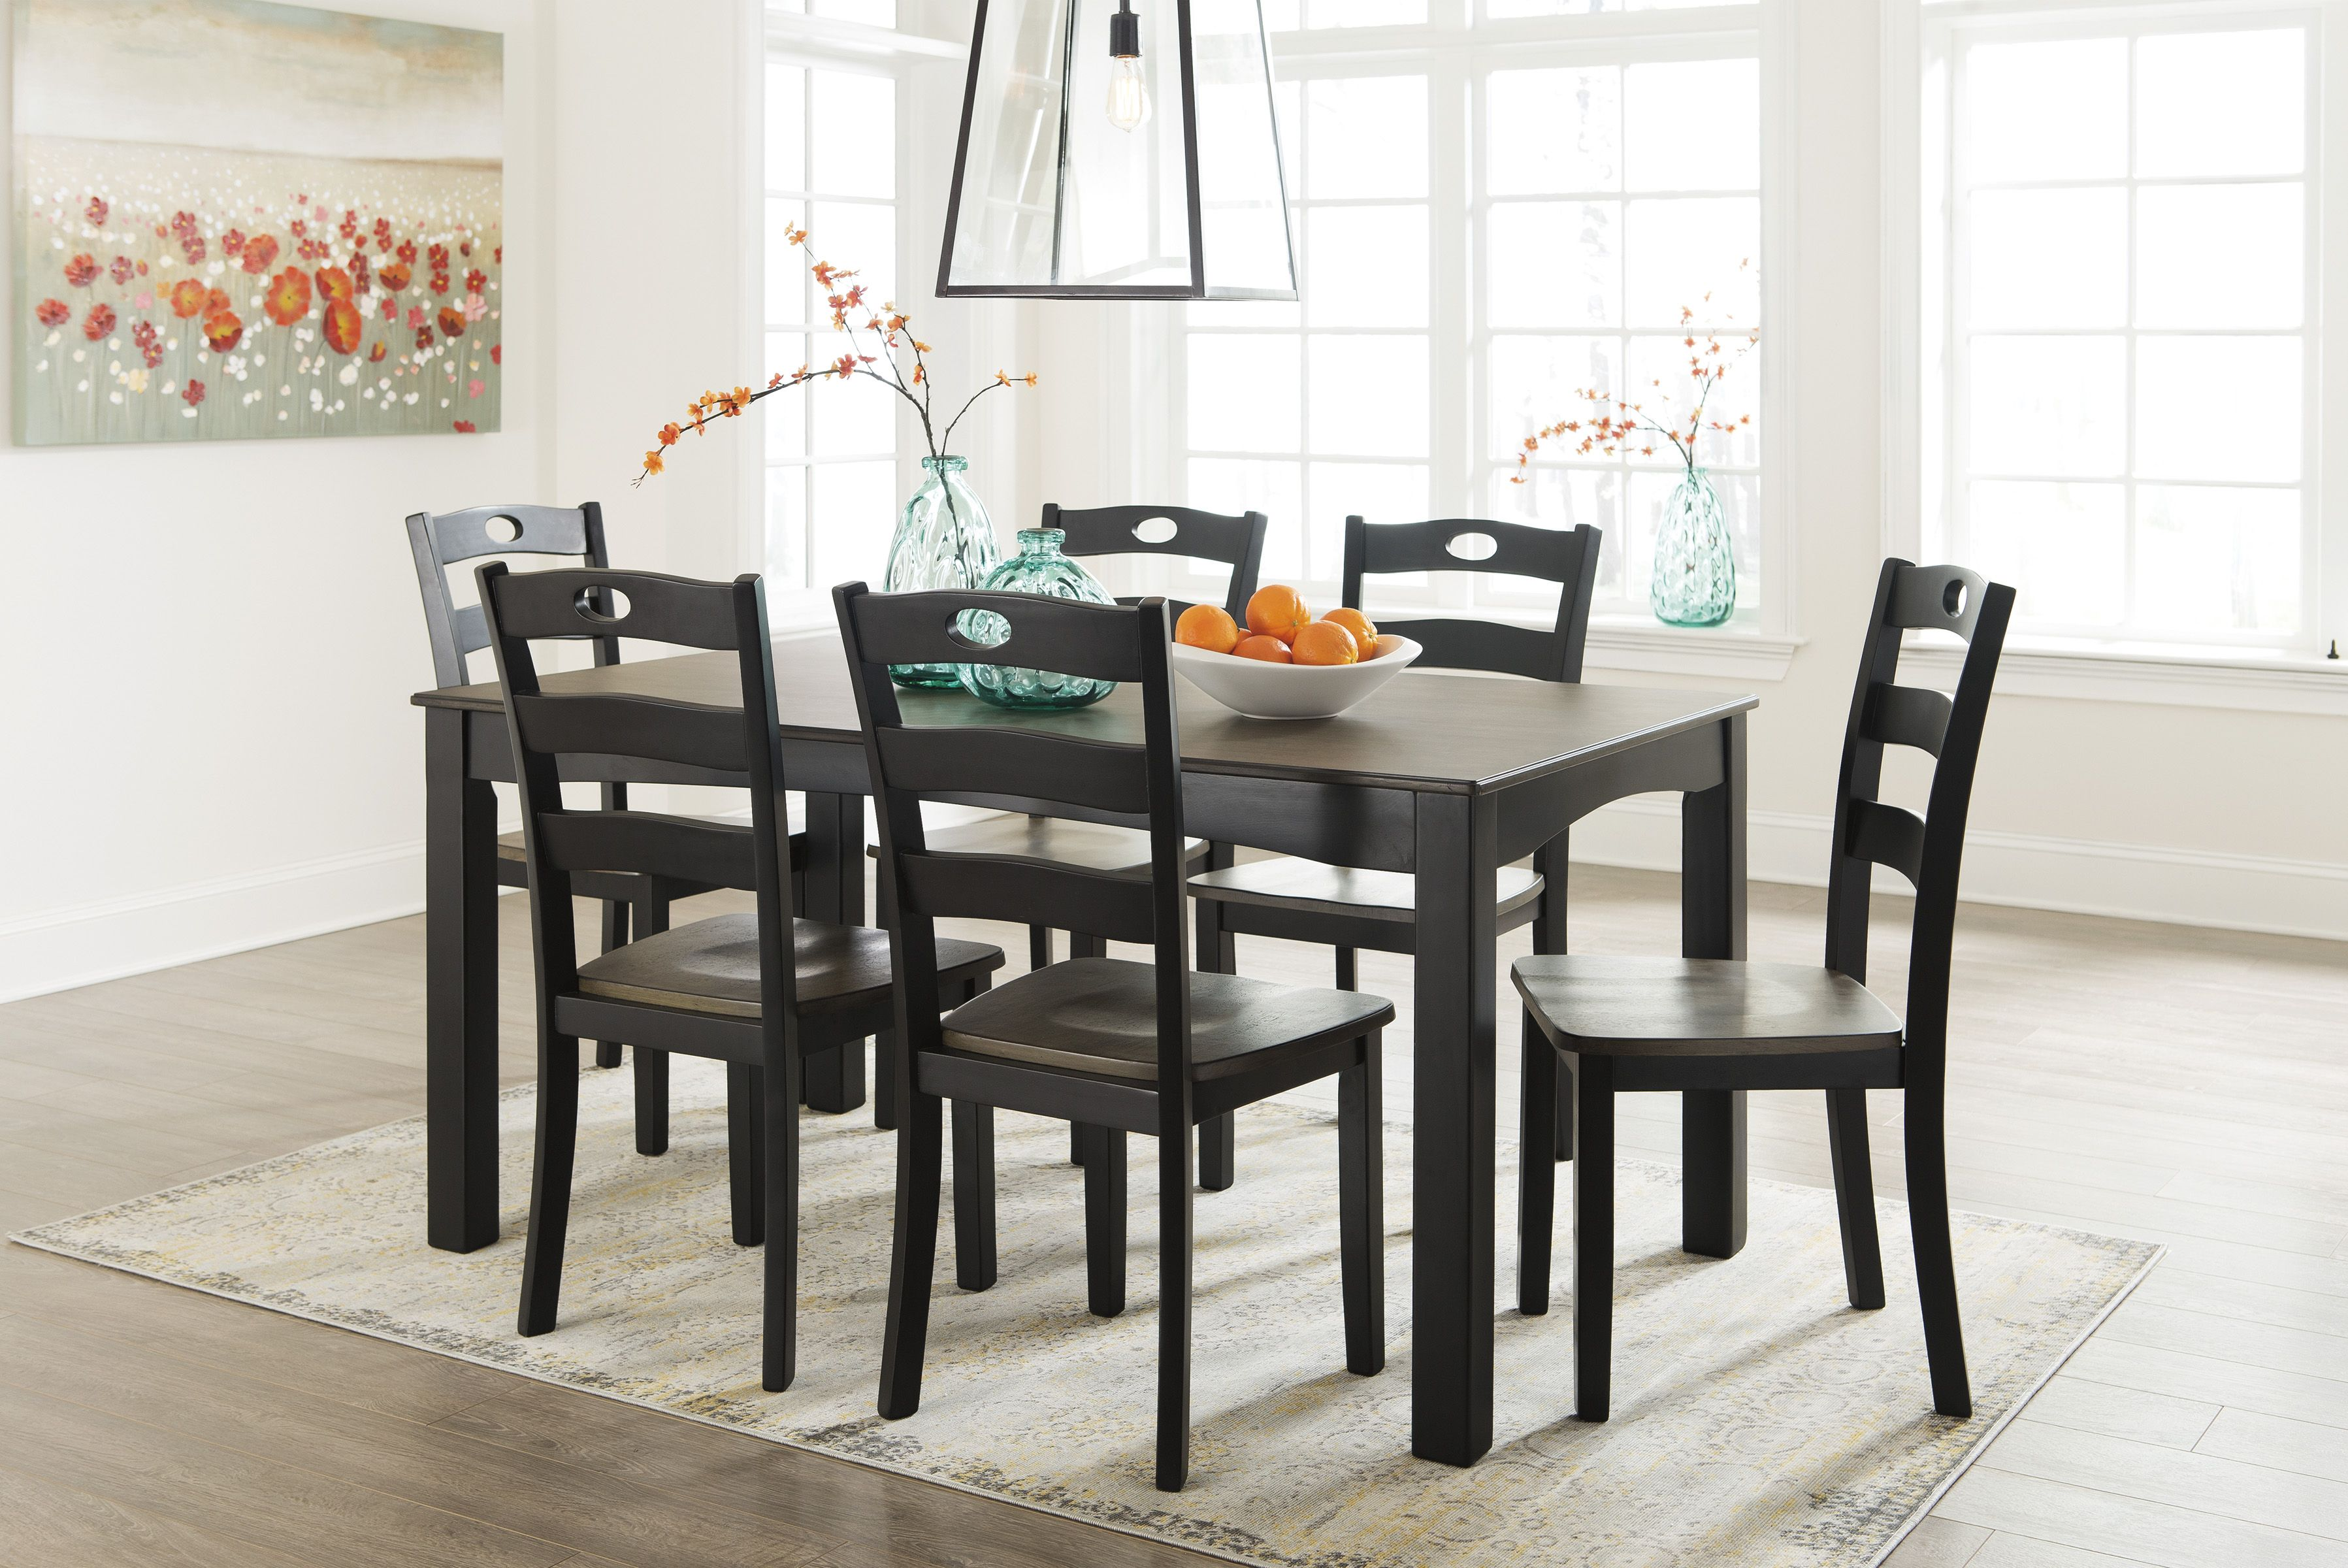 Ashley D338 Froshburg Dining Room Table And 6 Chairs Best Furniture Black Dining Room Black Dining Room Table Dining Room Table Set